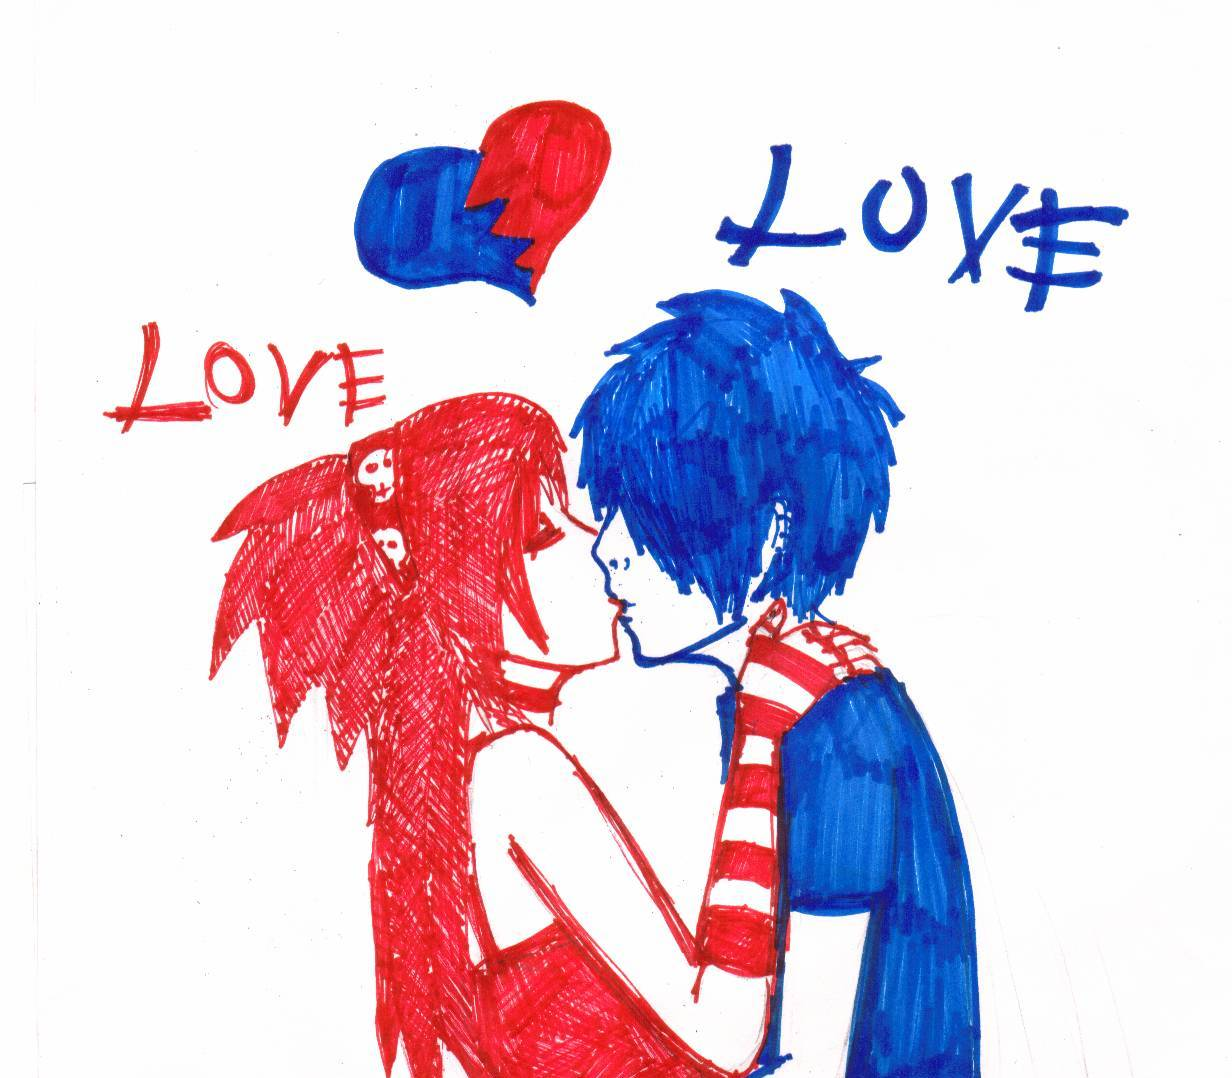 ... emo love pictures Cute Love Picture People Funny Pictures Emo Love